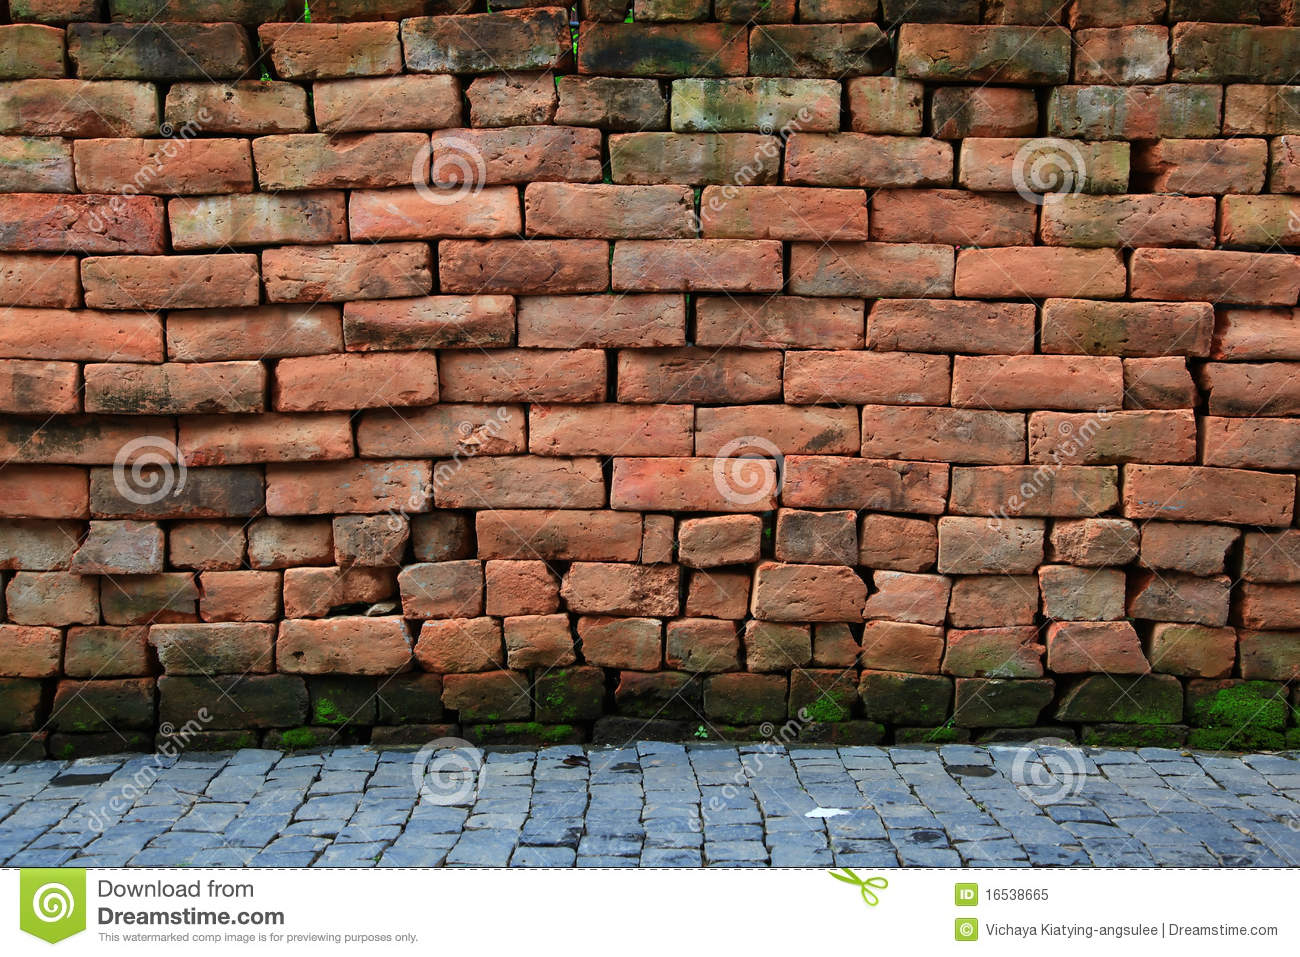 Red Brick Stone : Red stone brick wall with pavement royalty free stock